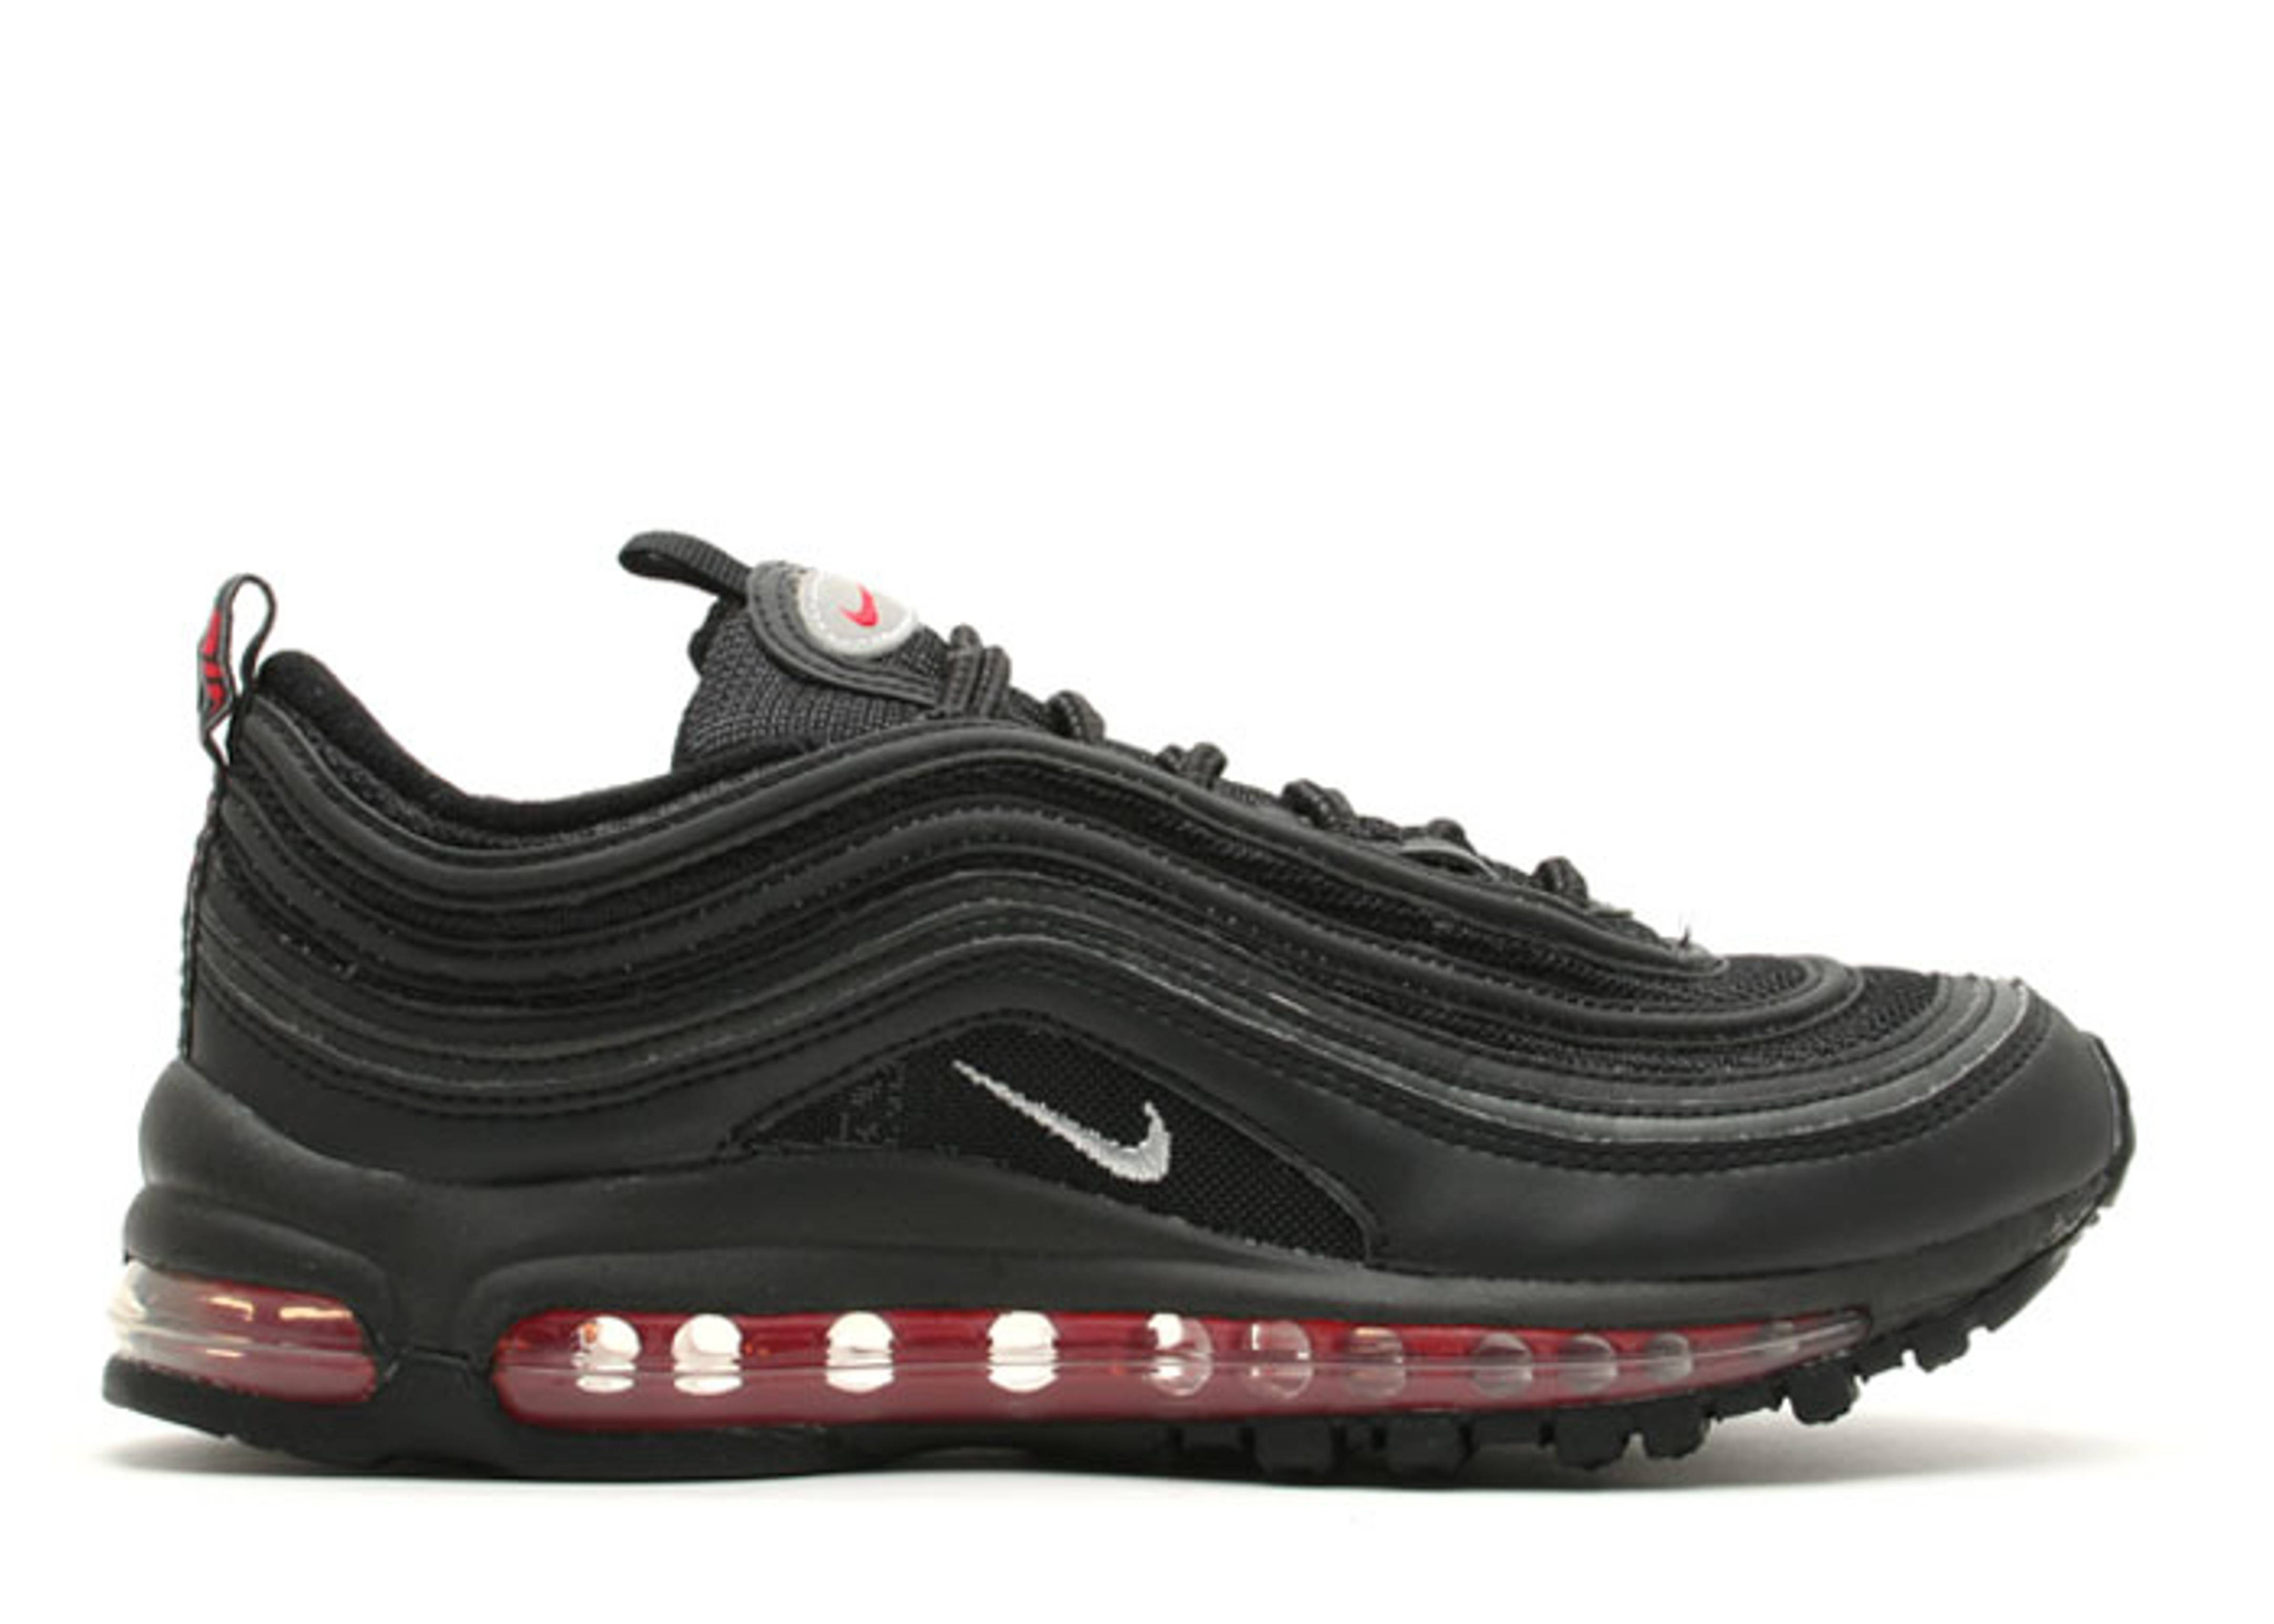 Nike Air Max 97 GS Black Reflective 'Pimento'